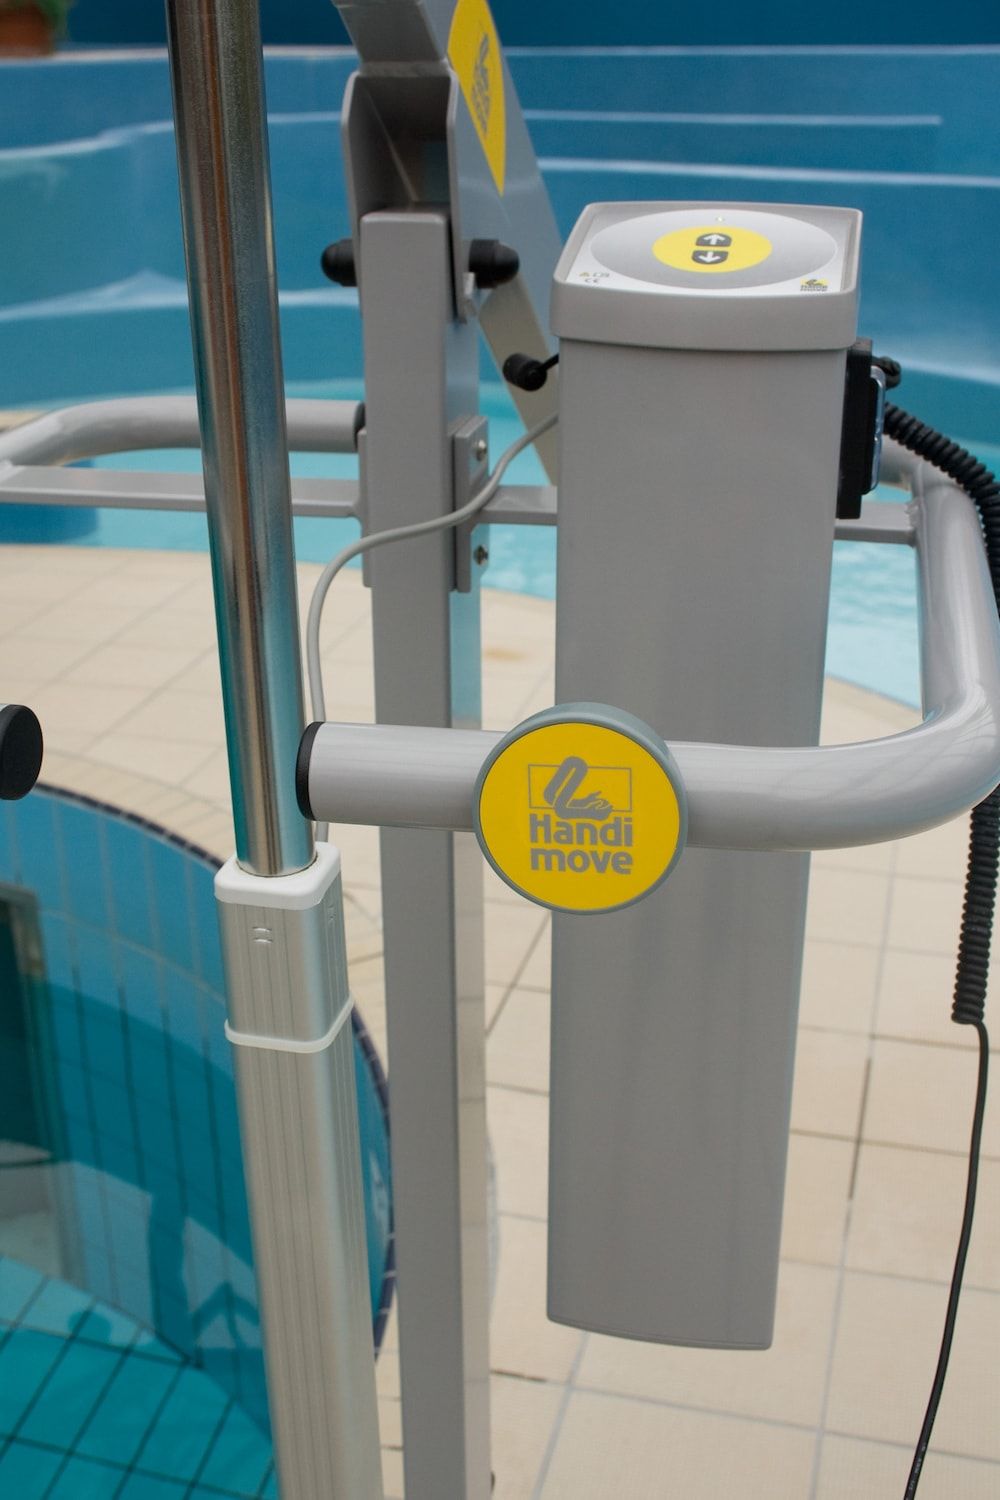 handi-move-pool-lift-control-box.jpg